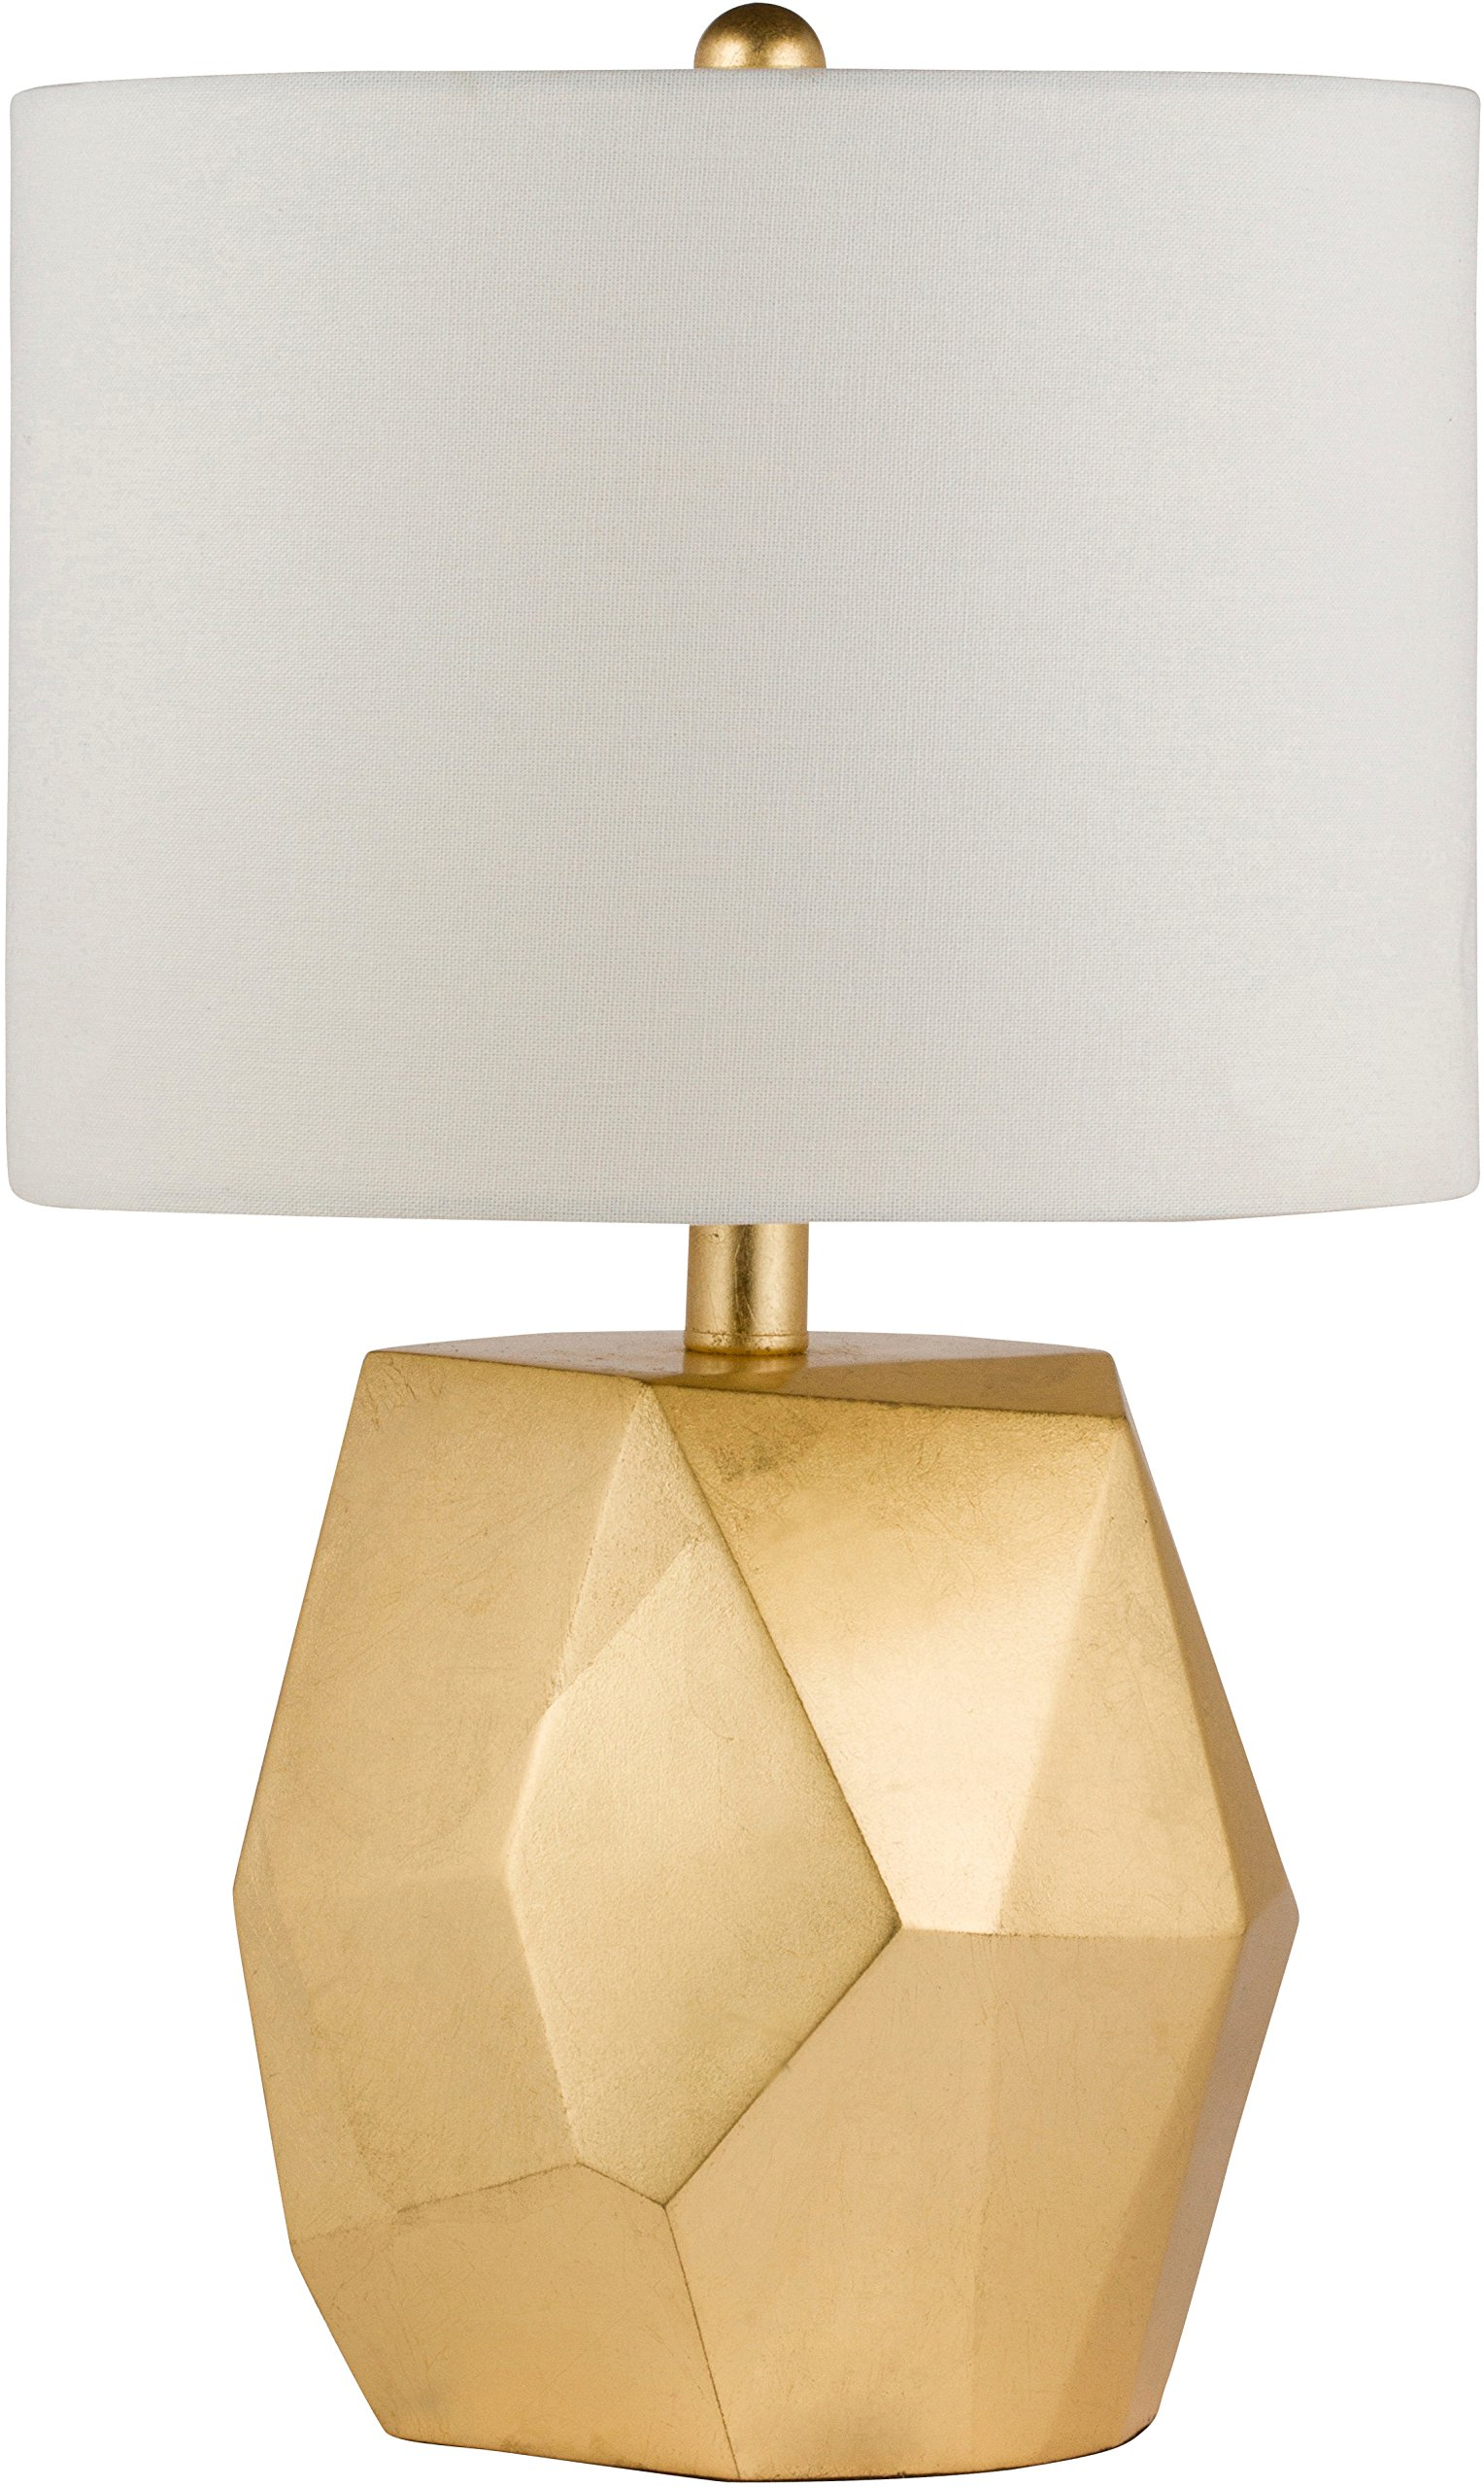 """Virtue Home 701-19GO Modern Table Lamp with White Shade, Textured Fabric""""Rock"""" Style Resin, Coated Base with Gold Finish, 19"""" H, 12"""" x 12"""" x 19"""""""